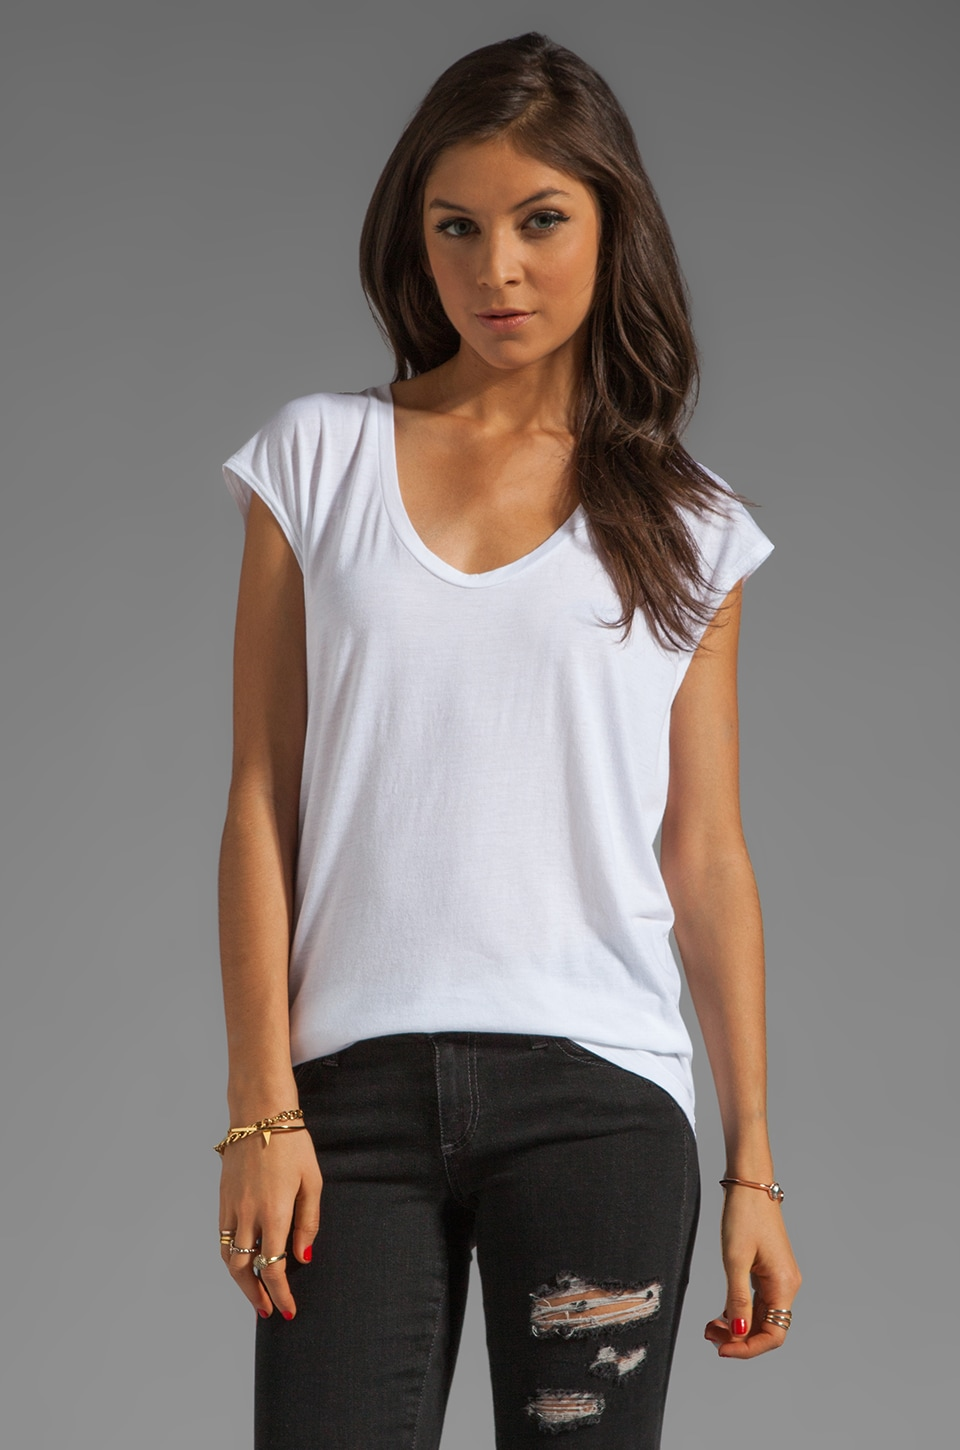 AG Adriano Goldschmied Sleeveless Scoop Tee in White